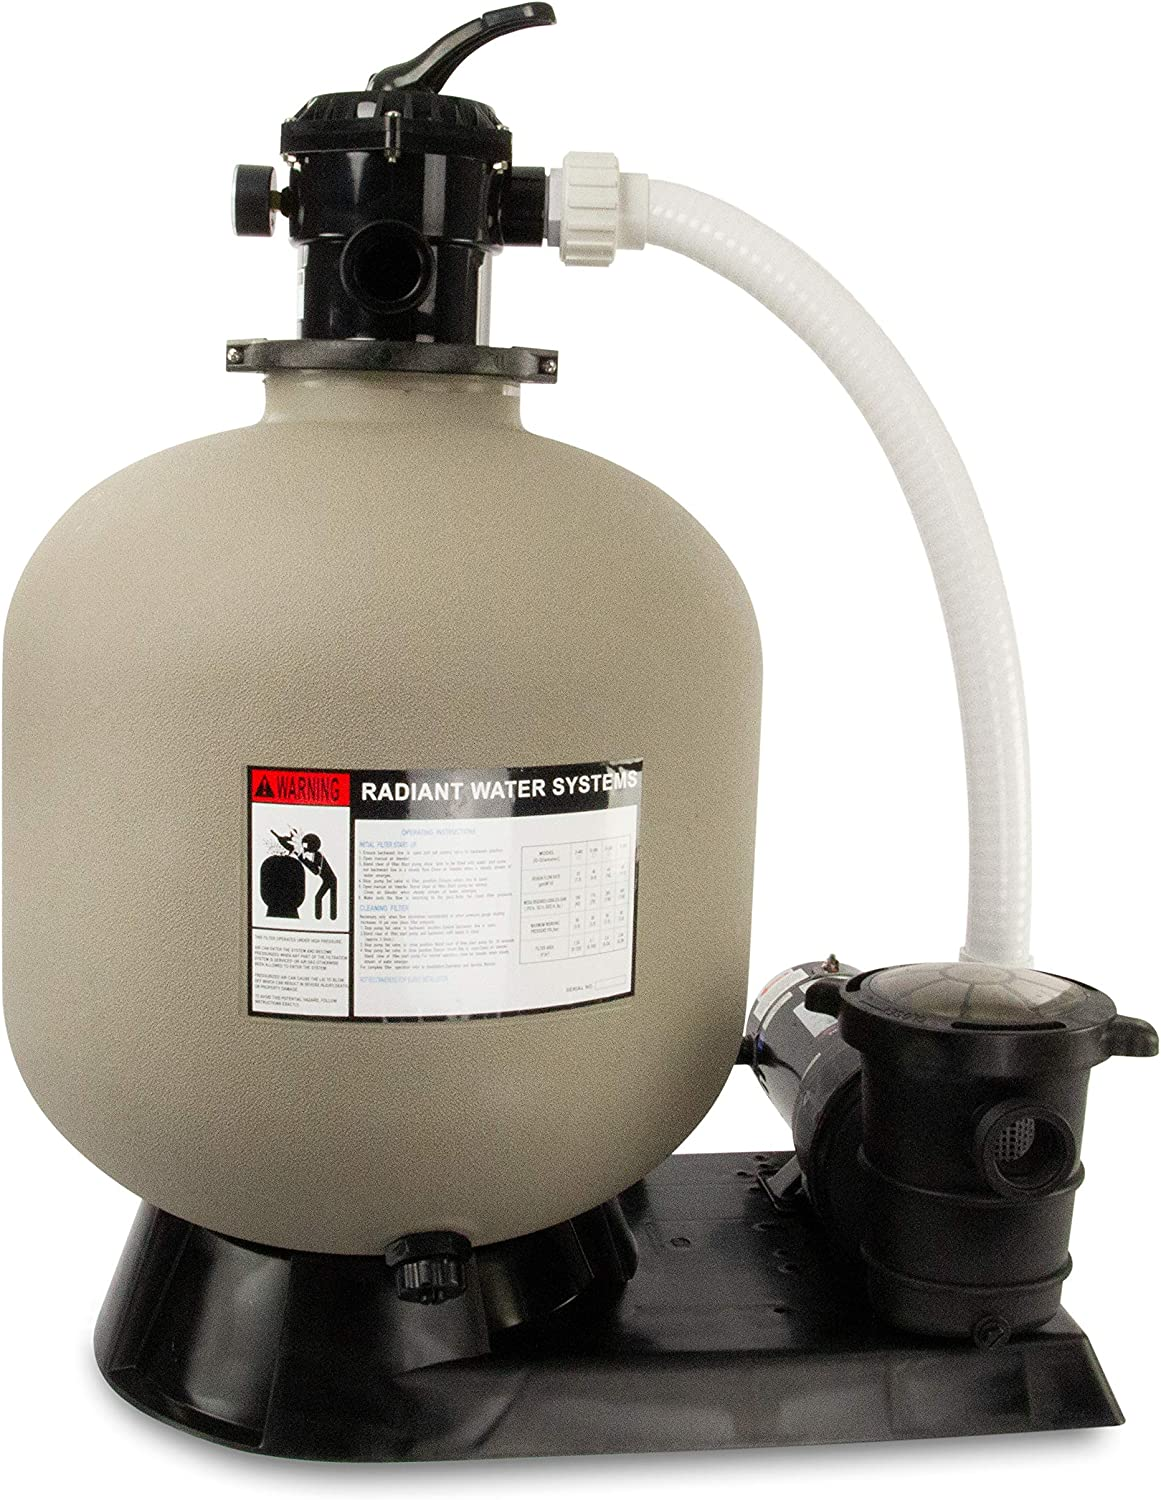 Rx Clear Radiant Complete Sand System for Ground Max 82% OFF Filter Above NEW